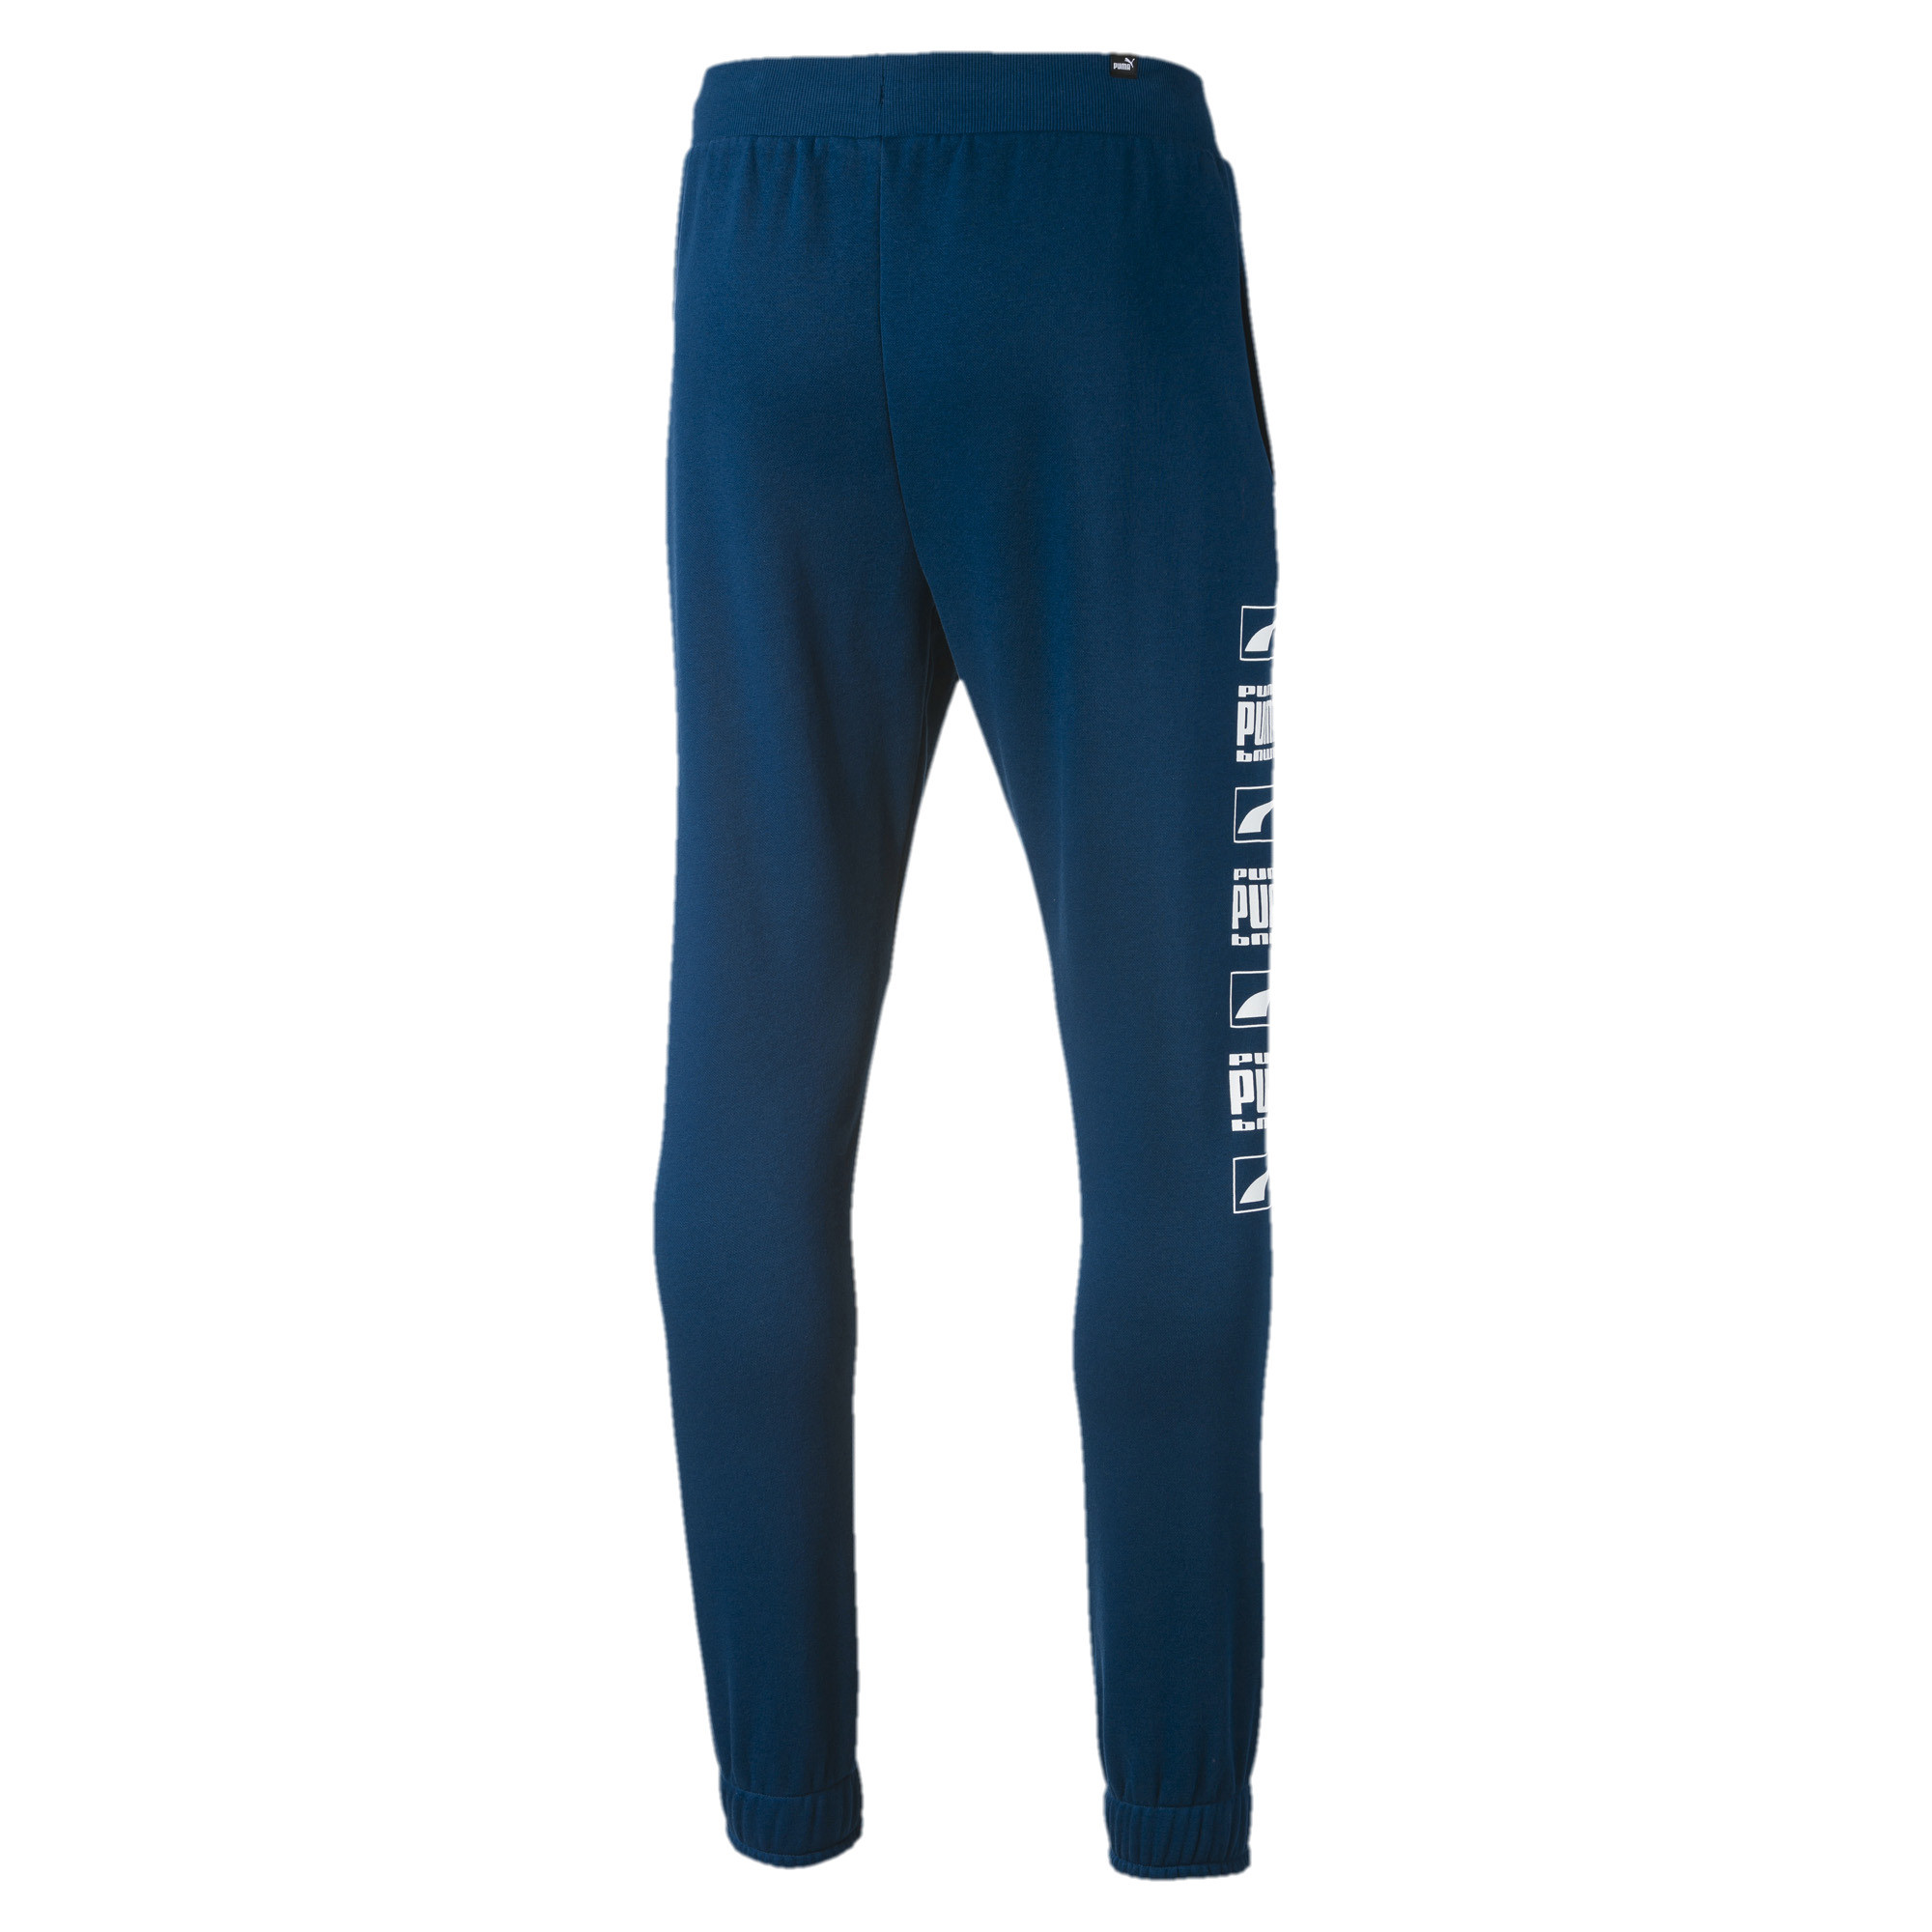 PUMA-Rebel-Bold-Men-039-s-Sweatpants-Men-Knitted-Pants-Basics thumbnail 3